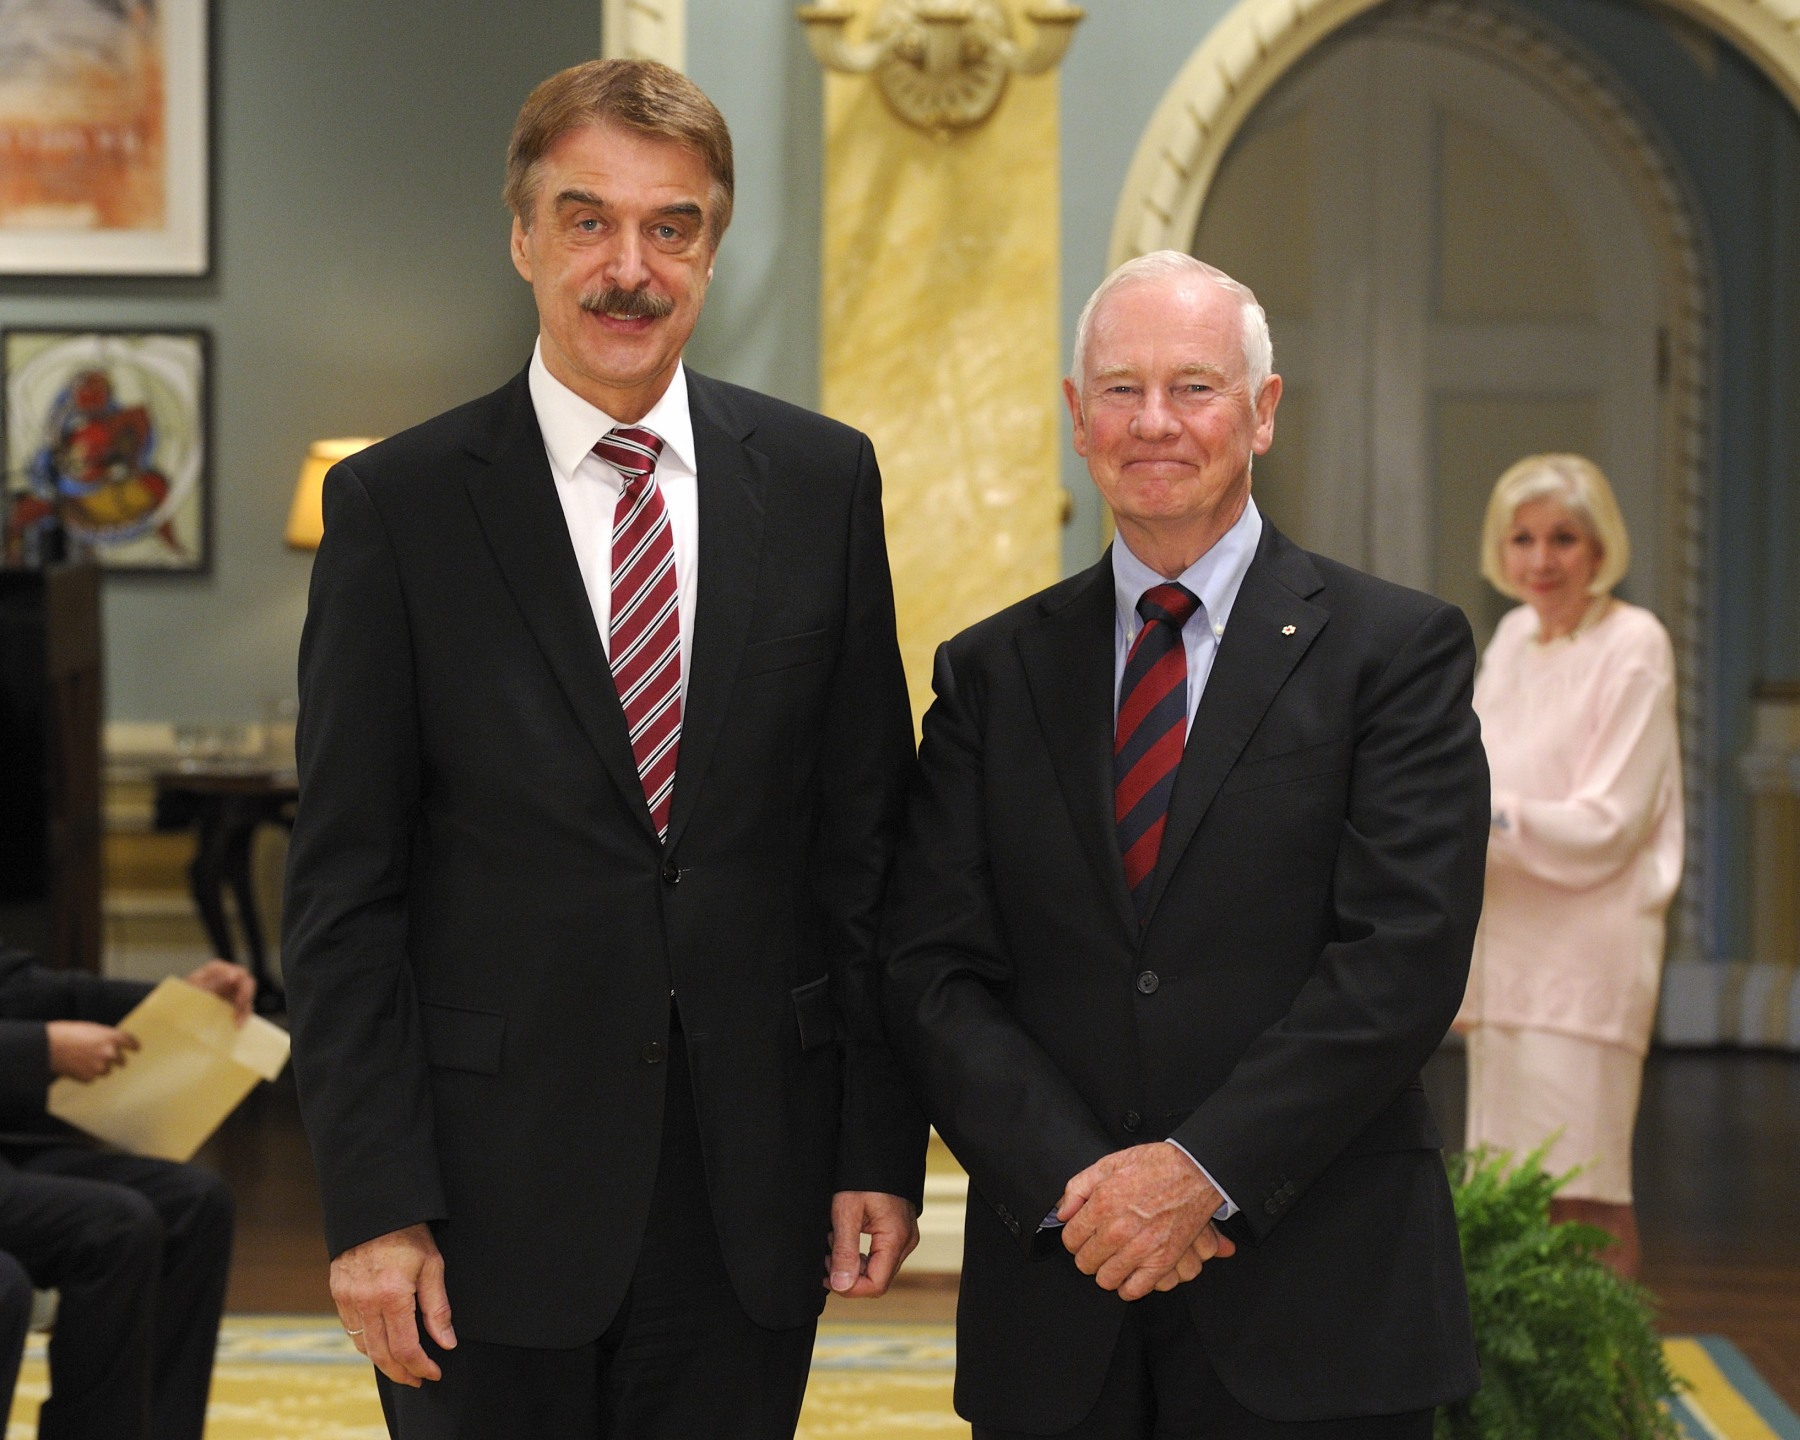 The Governor General received the credentials of His Excellency Werner Franz Wnendt, Ambassador of the Federal Republic of Germany.